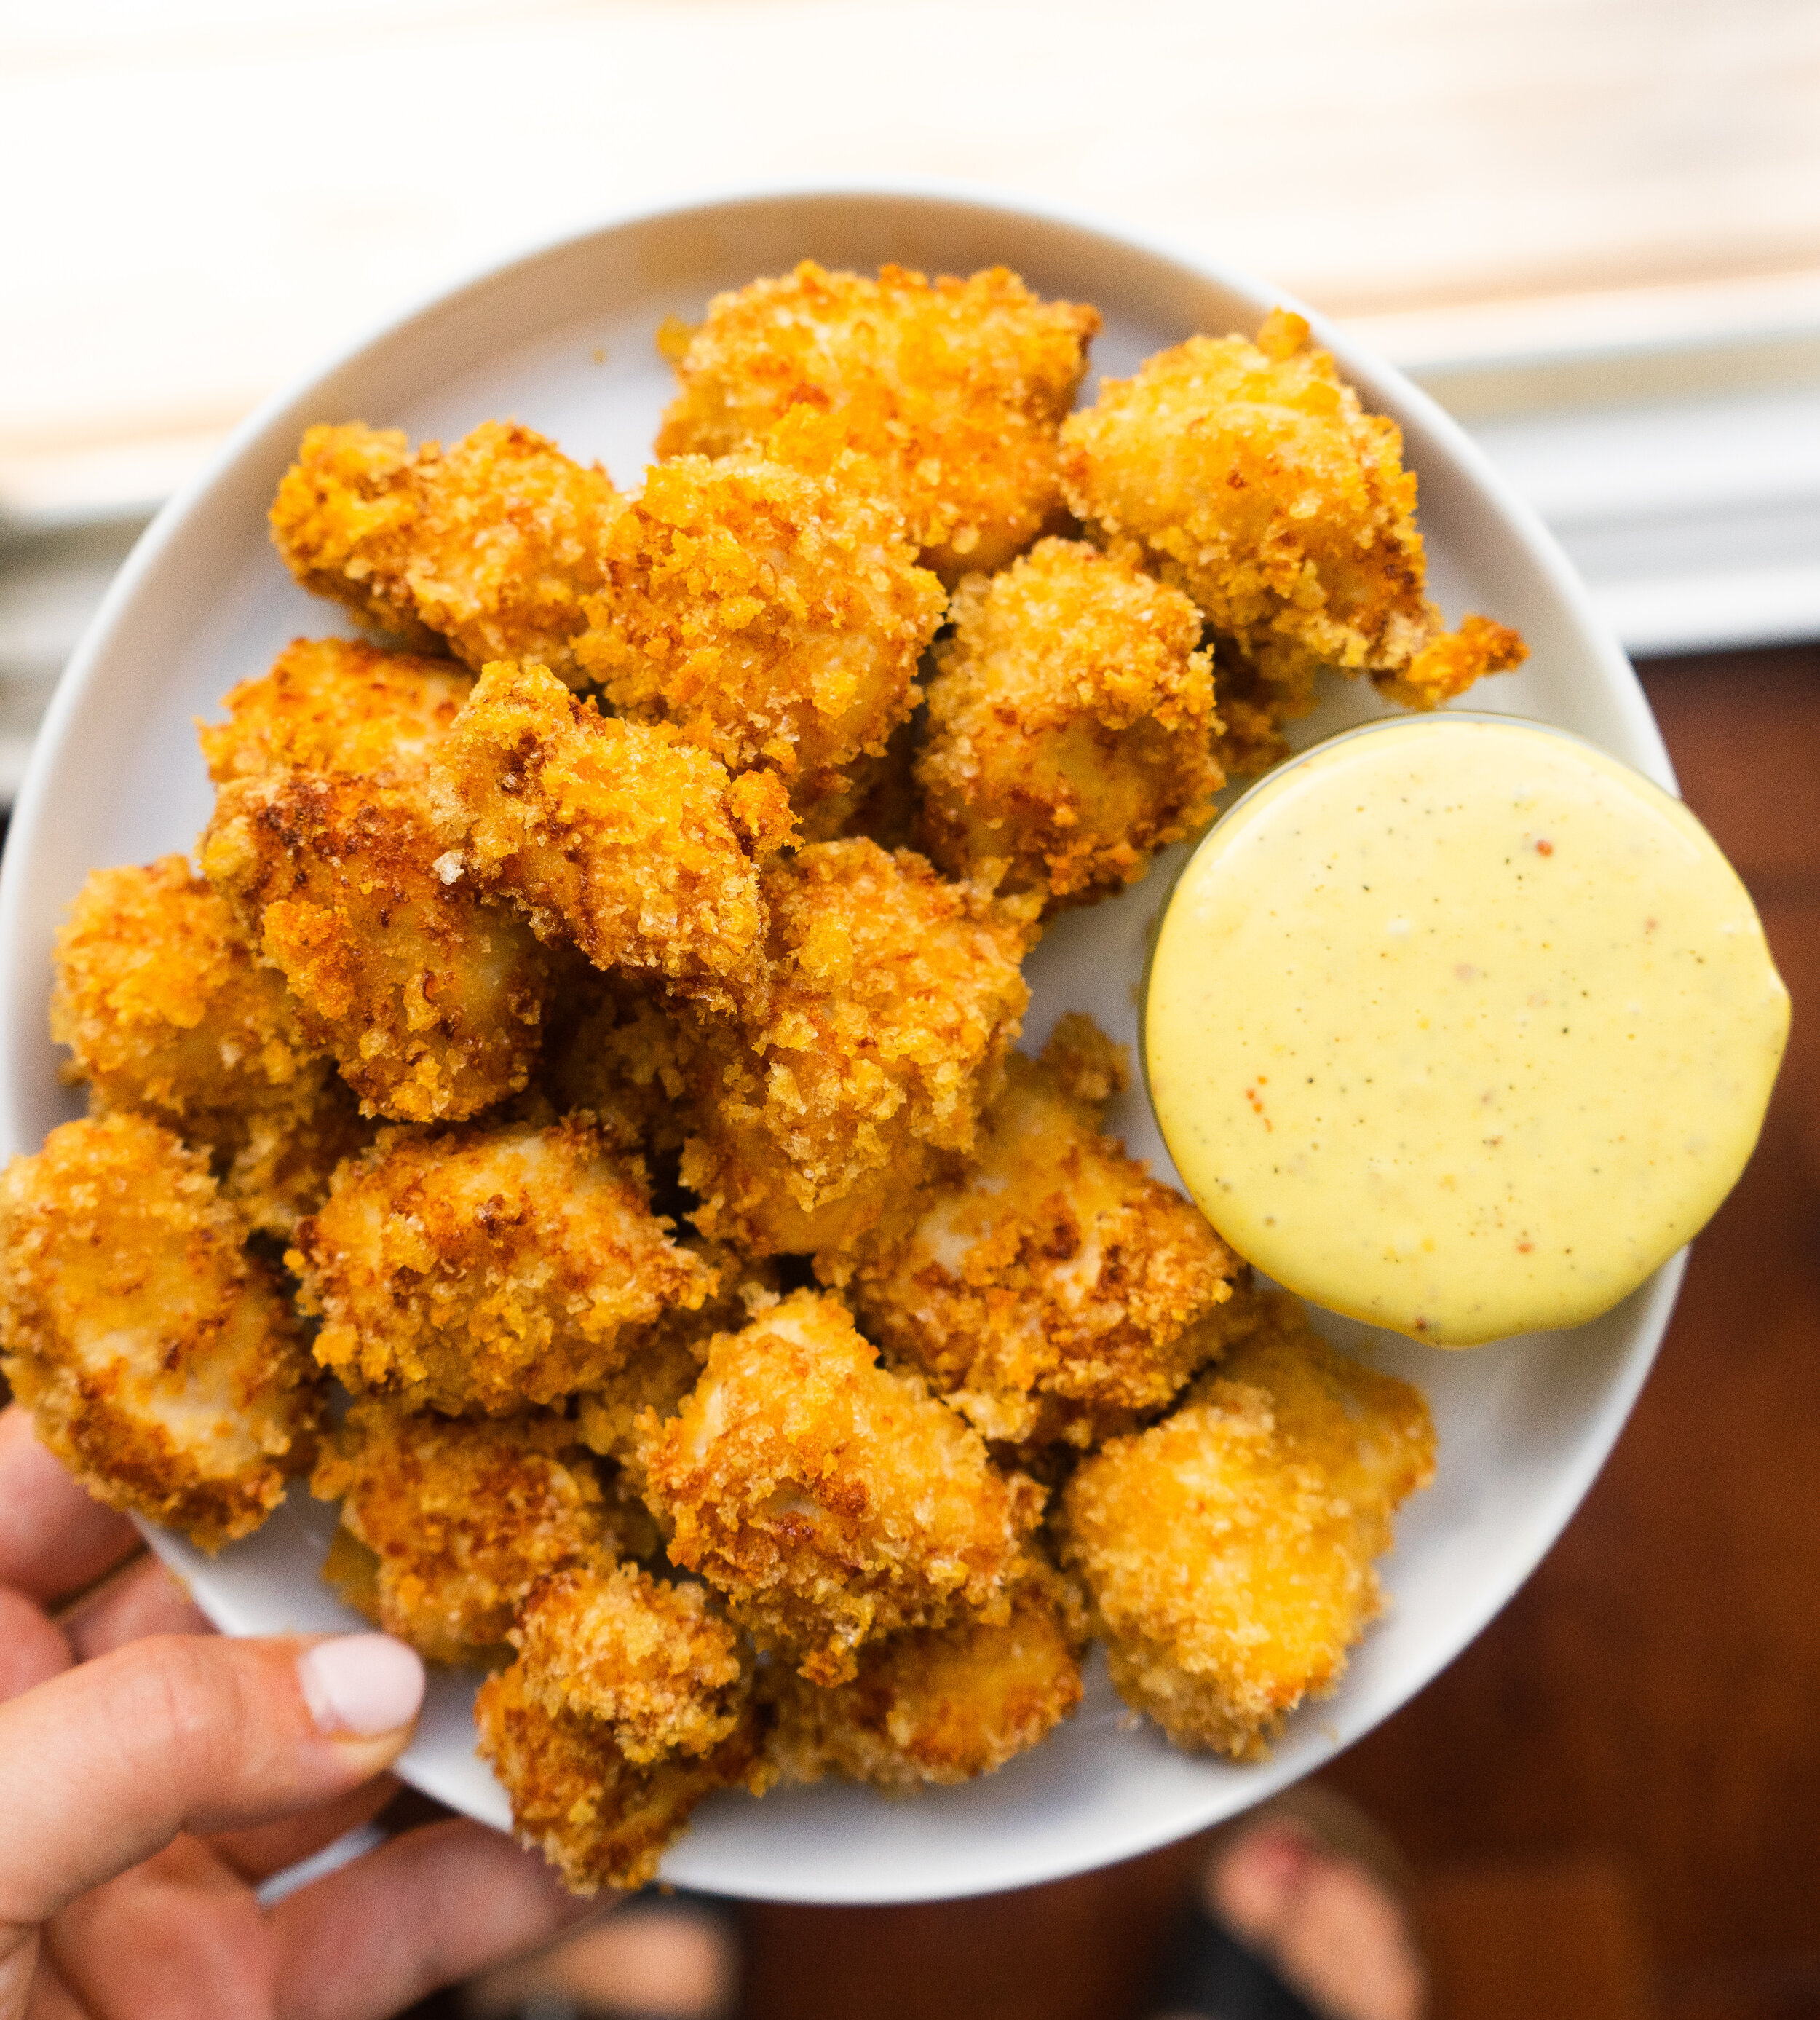 Above view of chicken nuggets served with honey mustard on the side